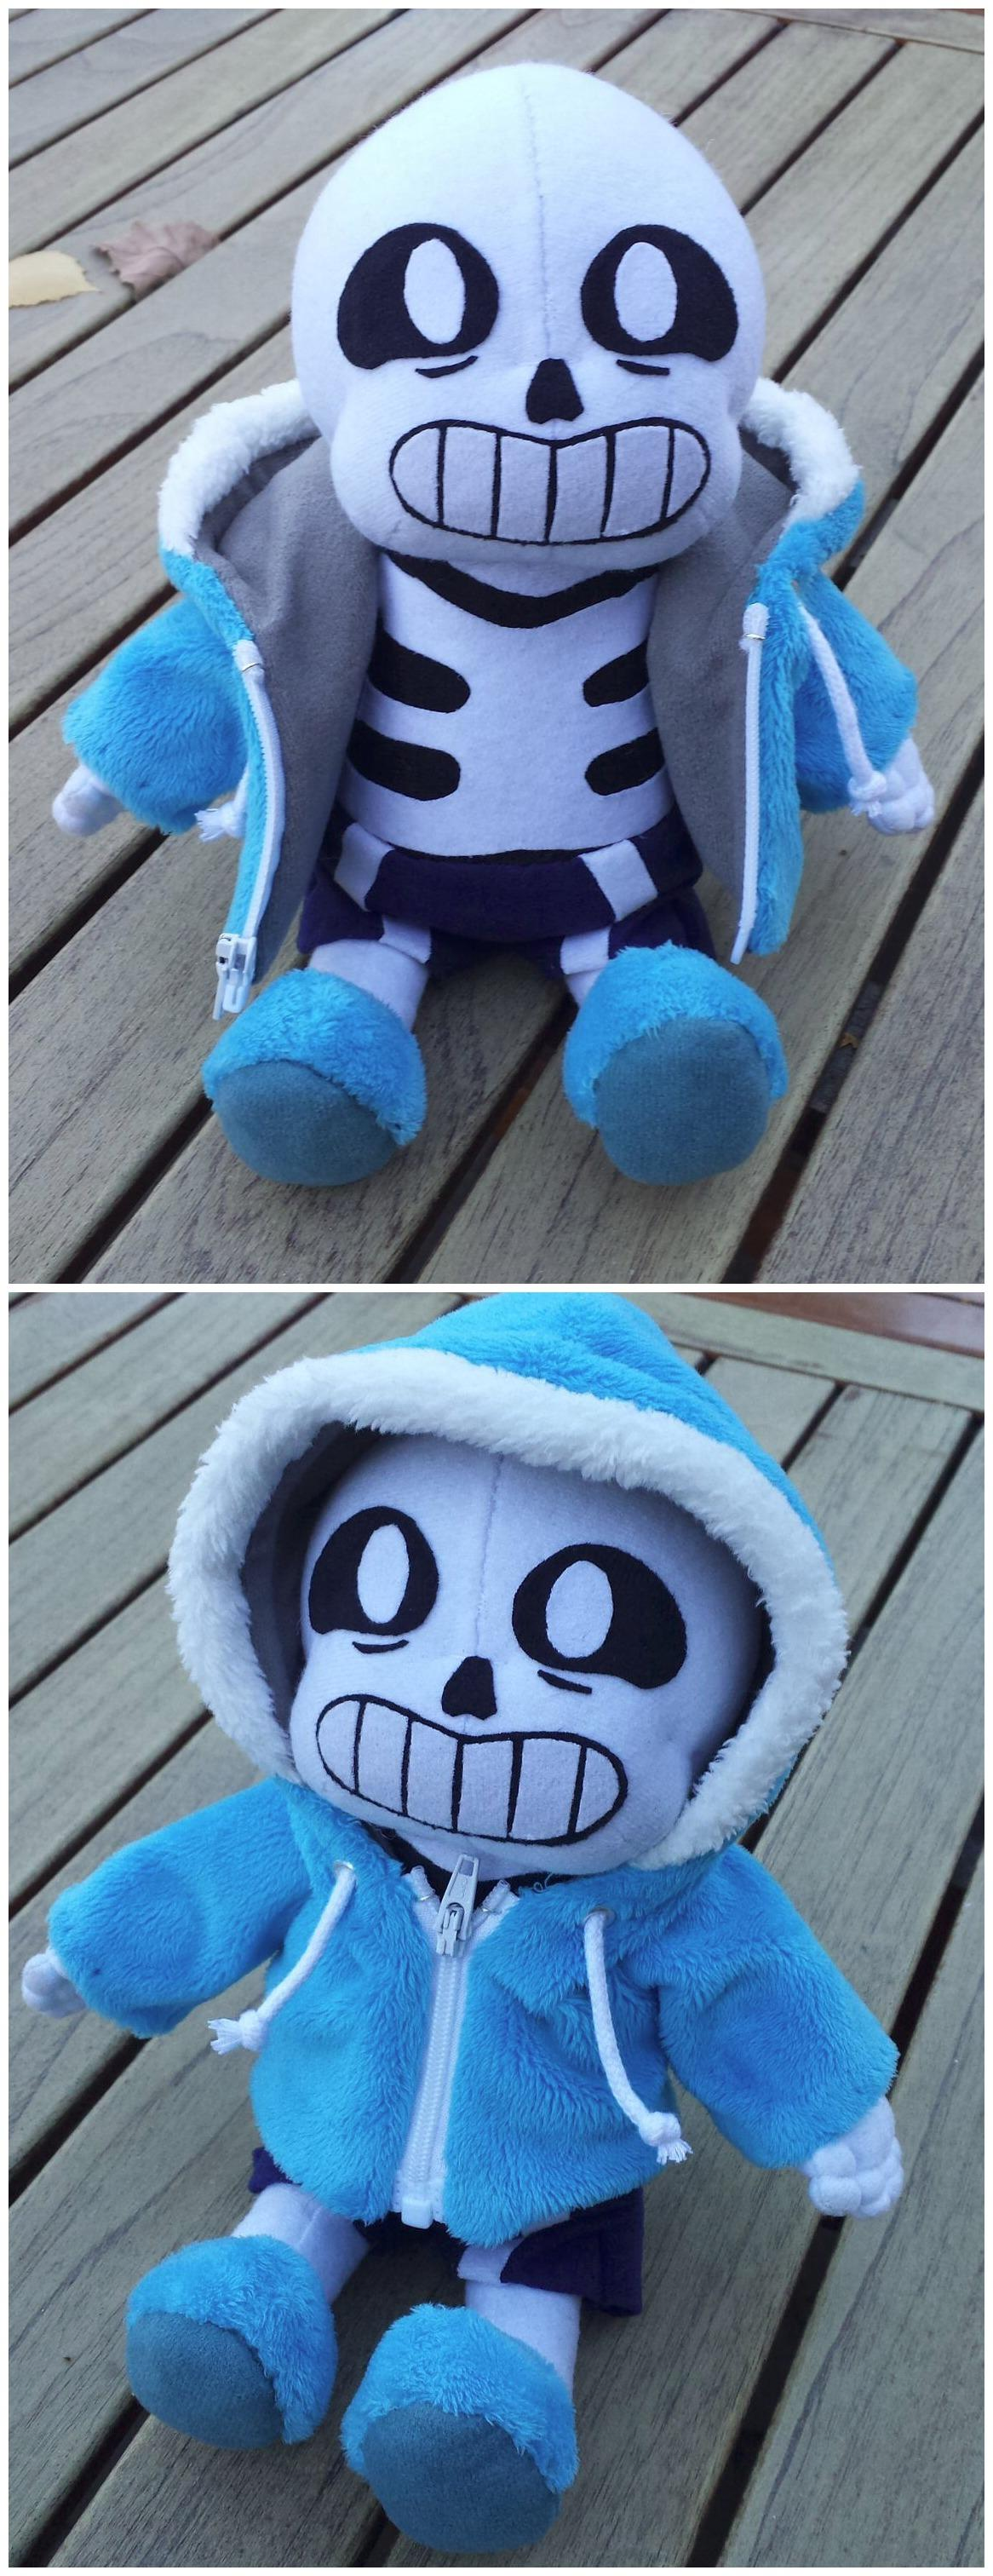 Unofficial Sans Plushie Undertale Know Your Meme